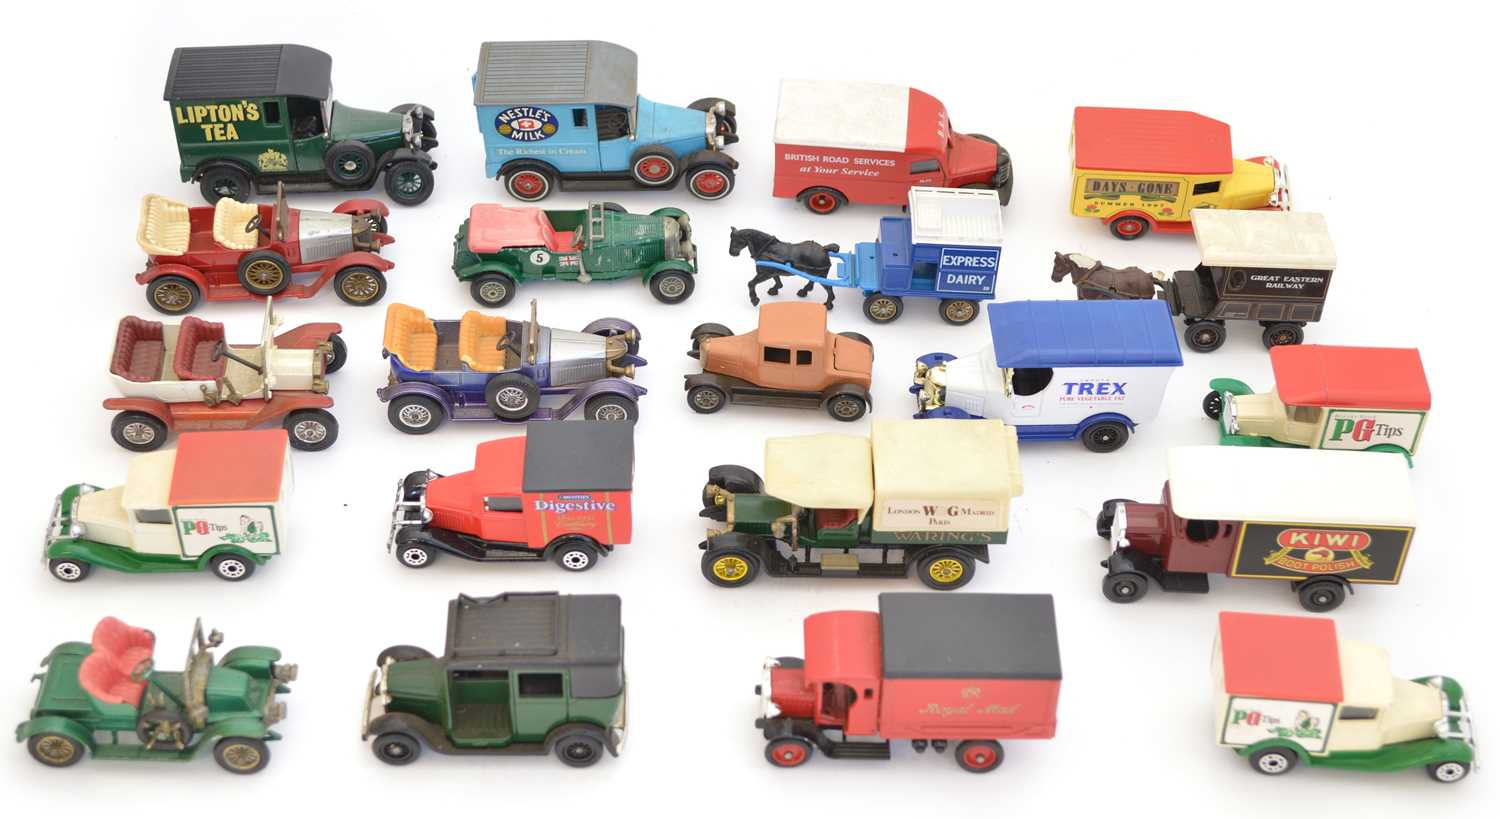 Lot 21 unboxed diecast toy cars